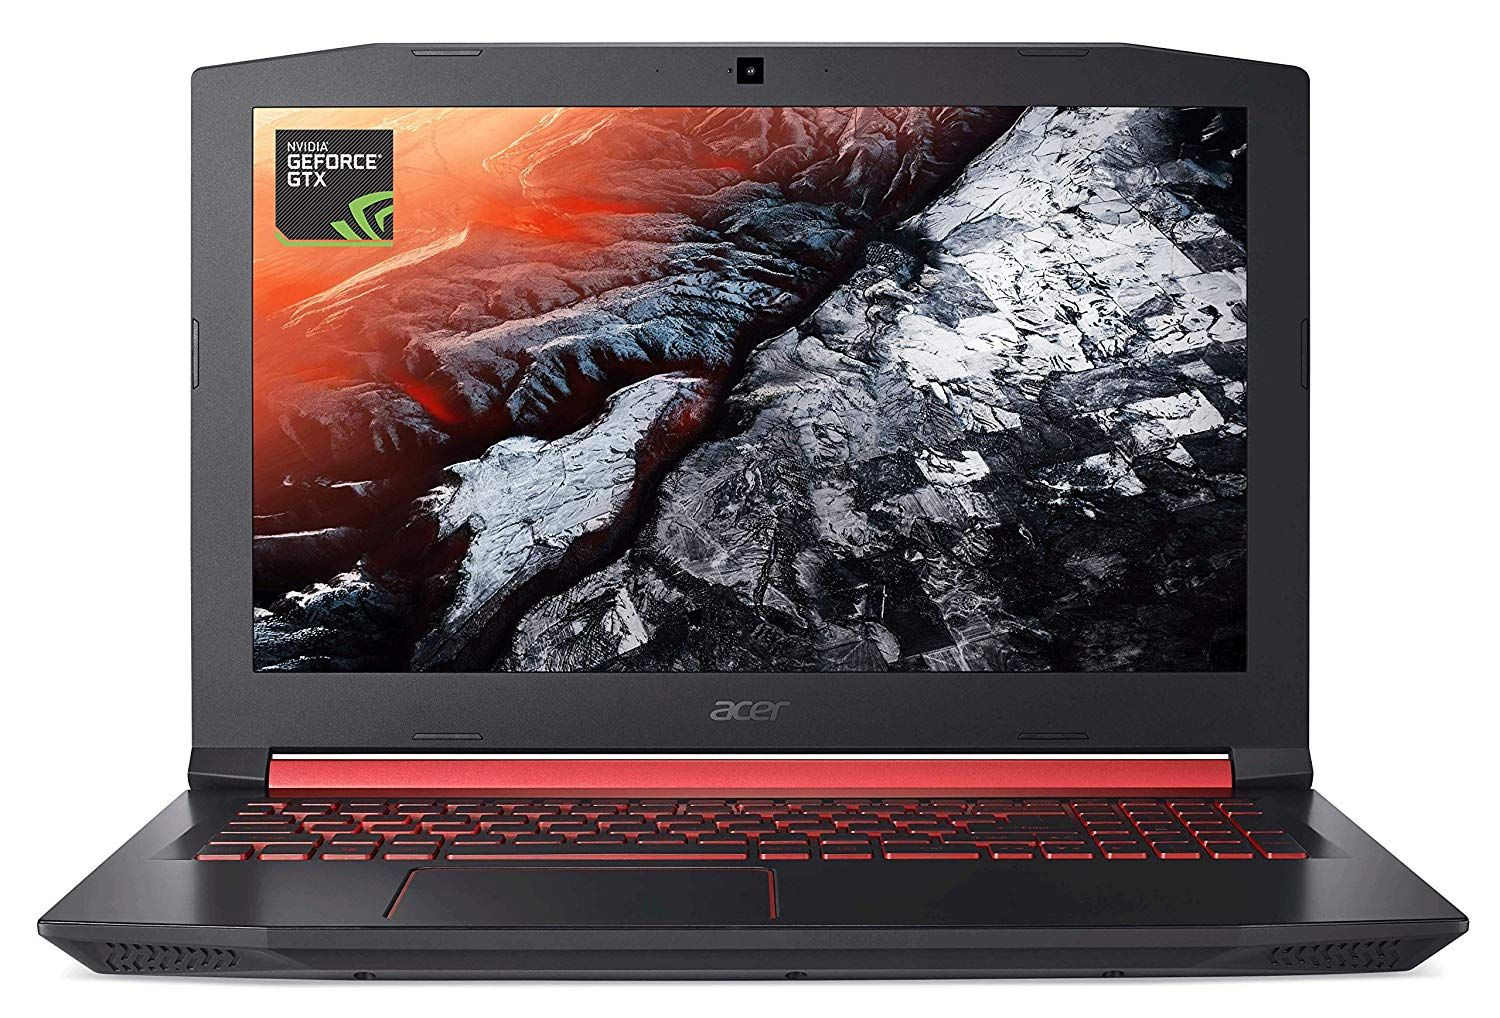 Best Gaming Laptop Under 800 Reddit Laptop Acer Best Gaming Laptop Gaming Laptops